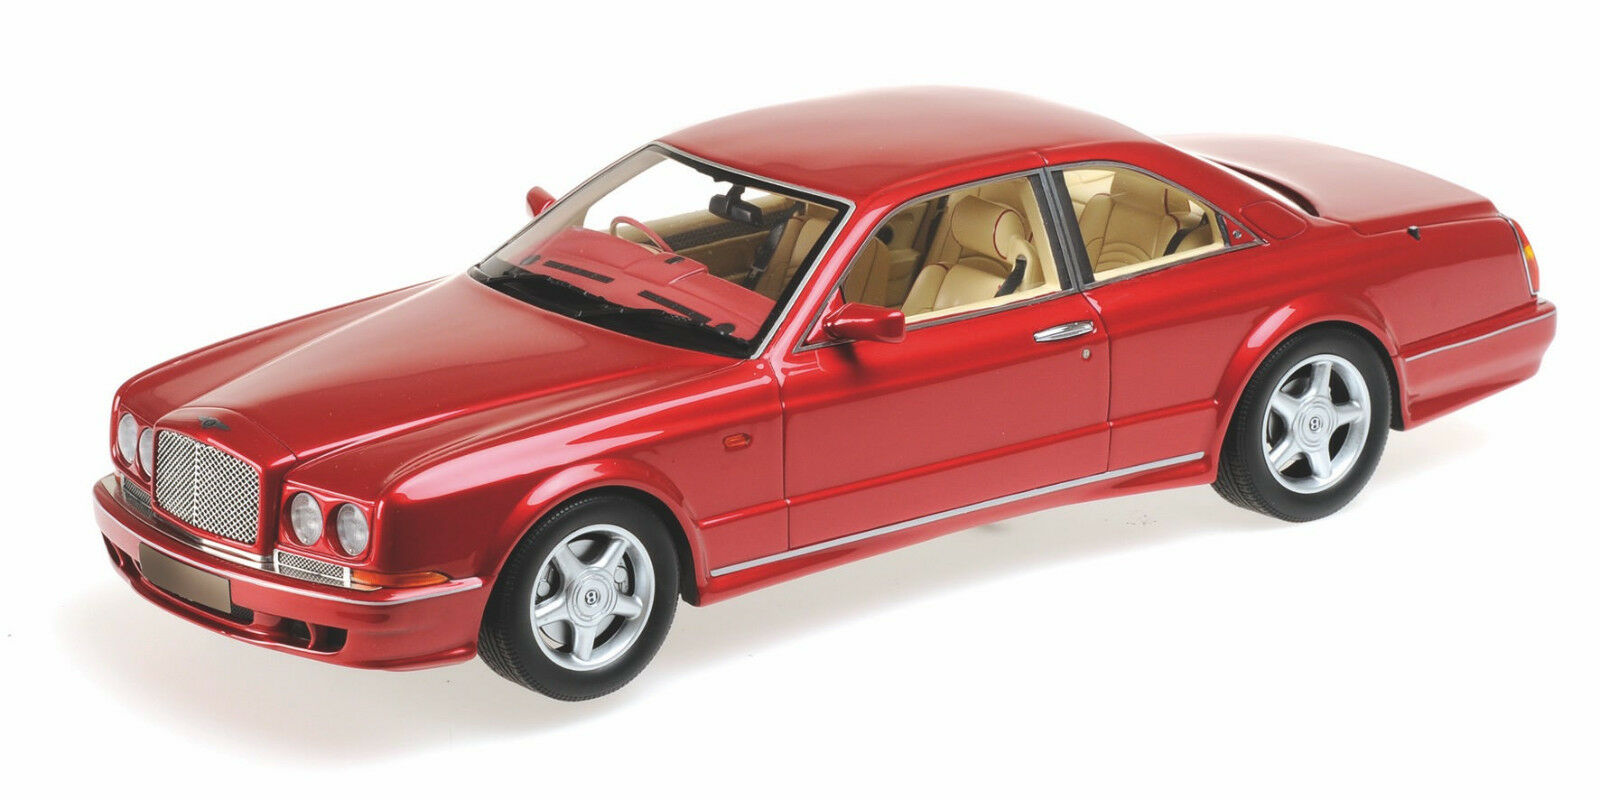 Minichamps 107139940 BENTLEY CONTINENTAL T 1996-disponibilità limitata - 1:18 NUOVO & OVP